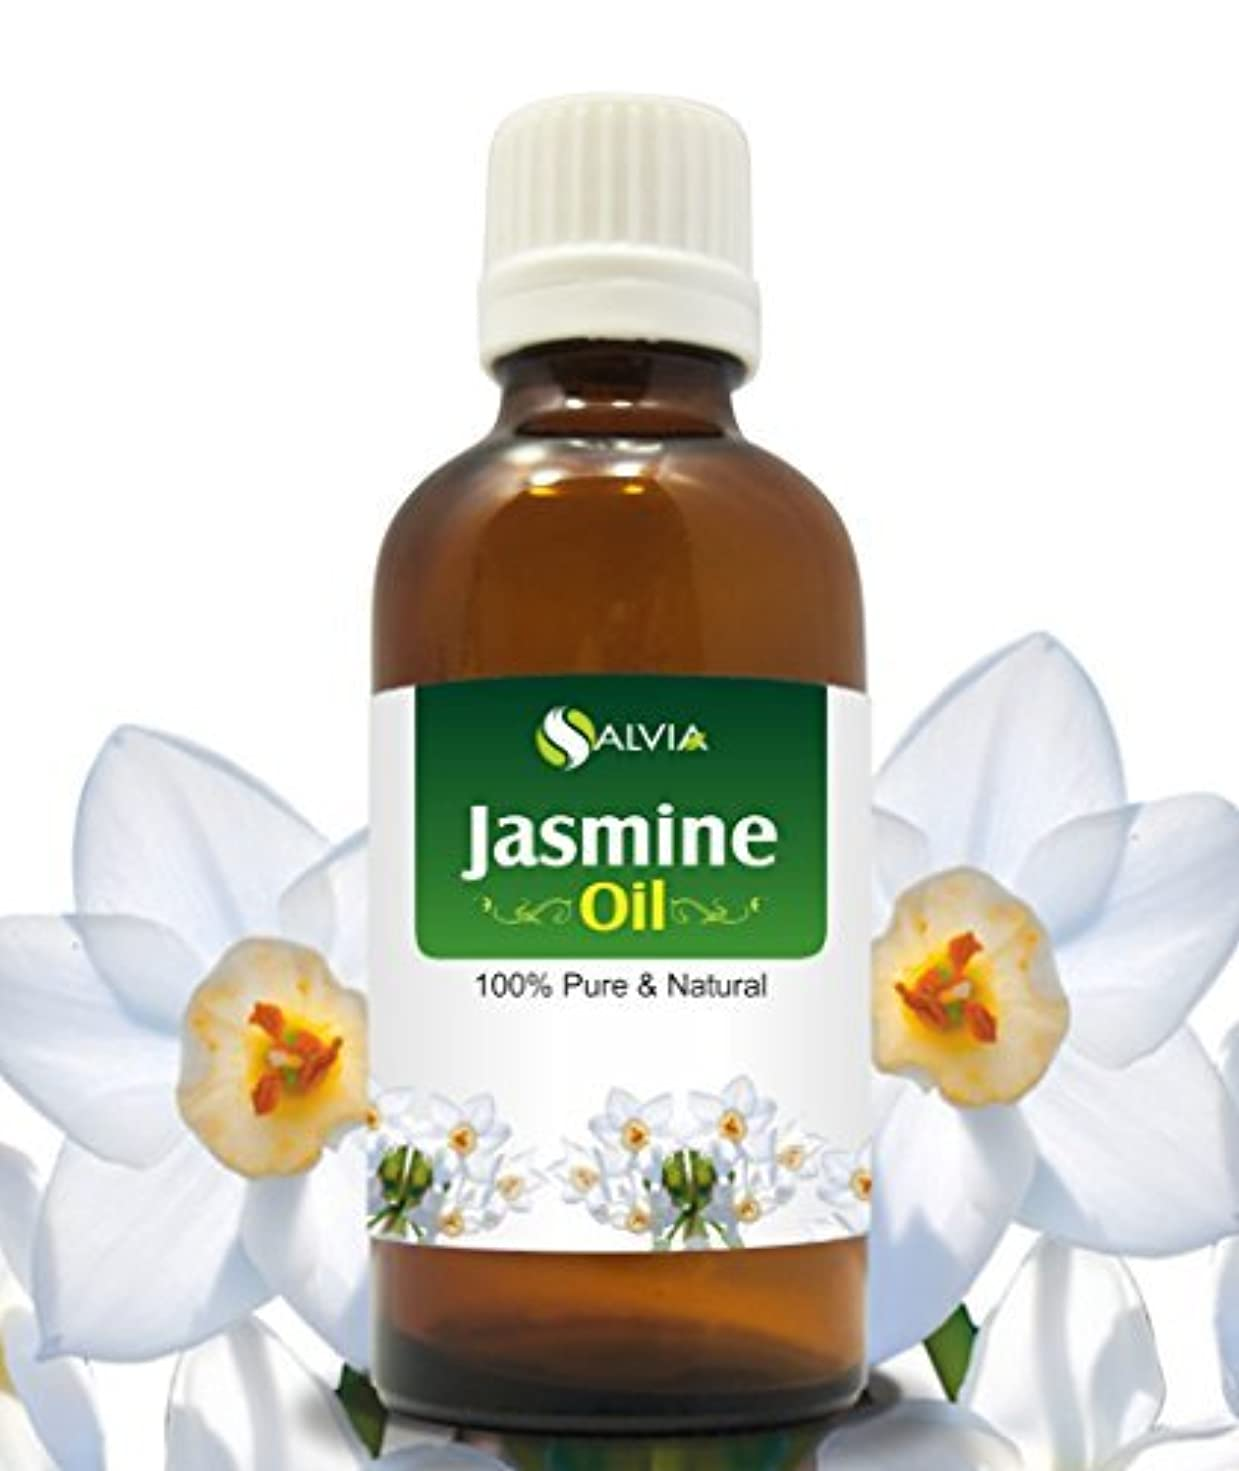 フェリー評議会フラフープJASMINE OIL 100% NATURAL PURE UNDILUTED UNCUT ESSENTIAL OILS 30ml by SALVIA